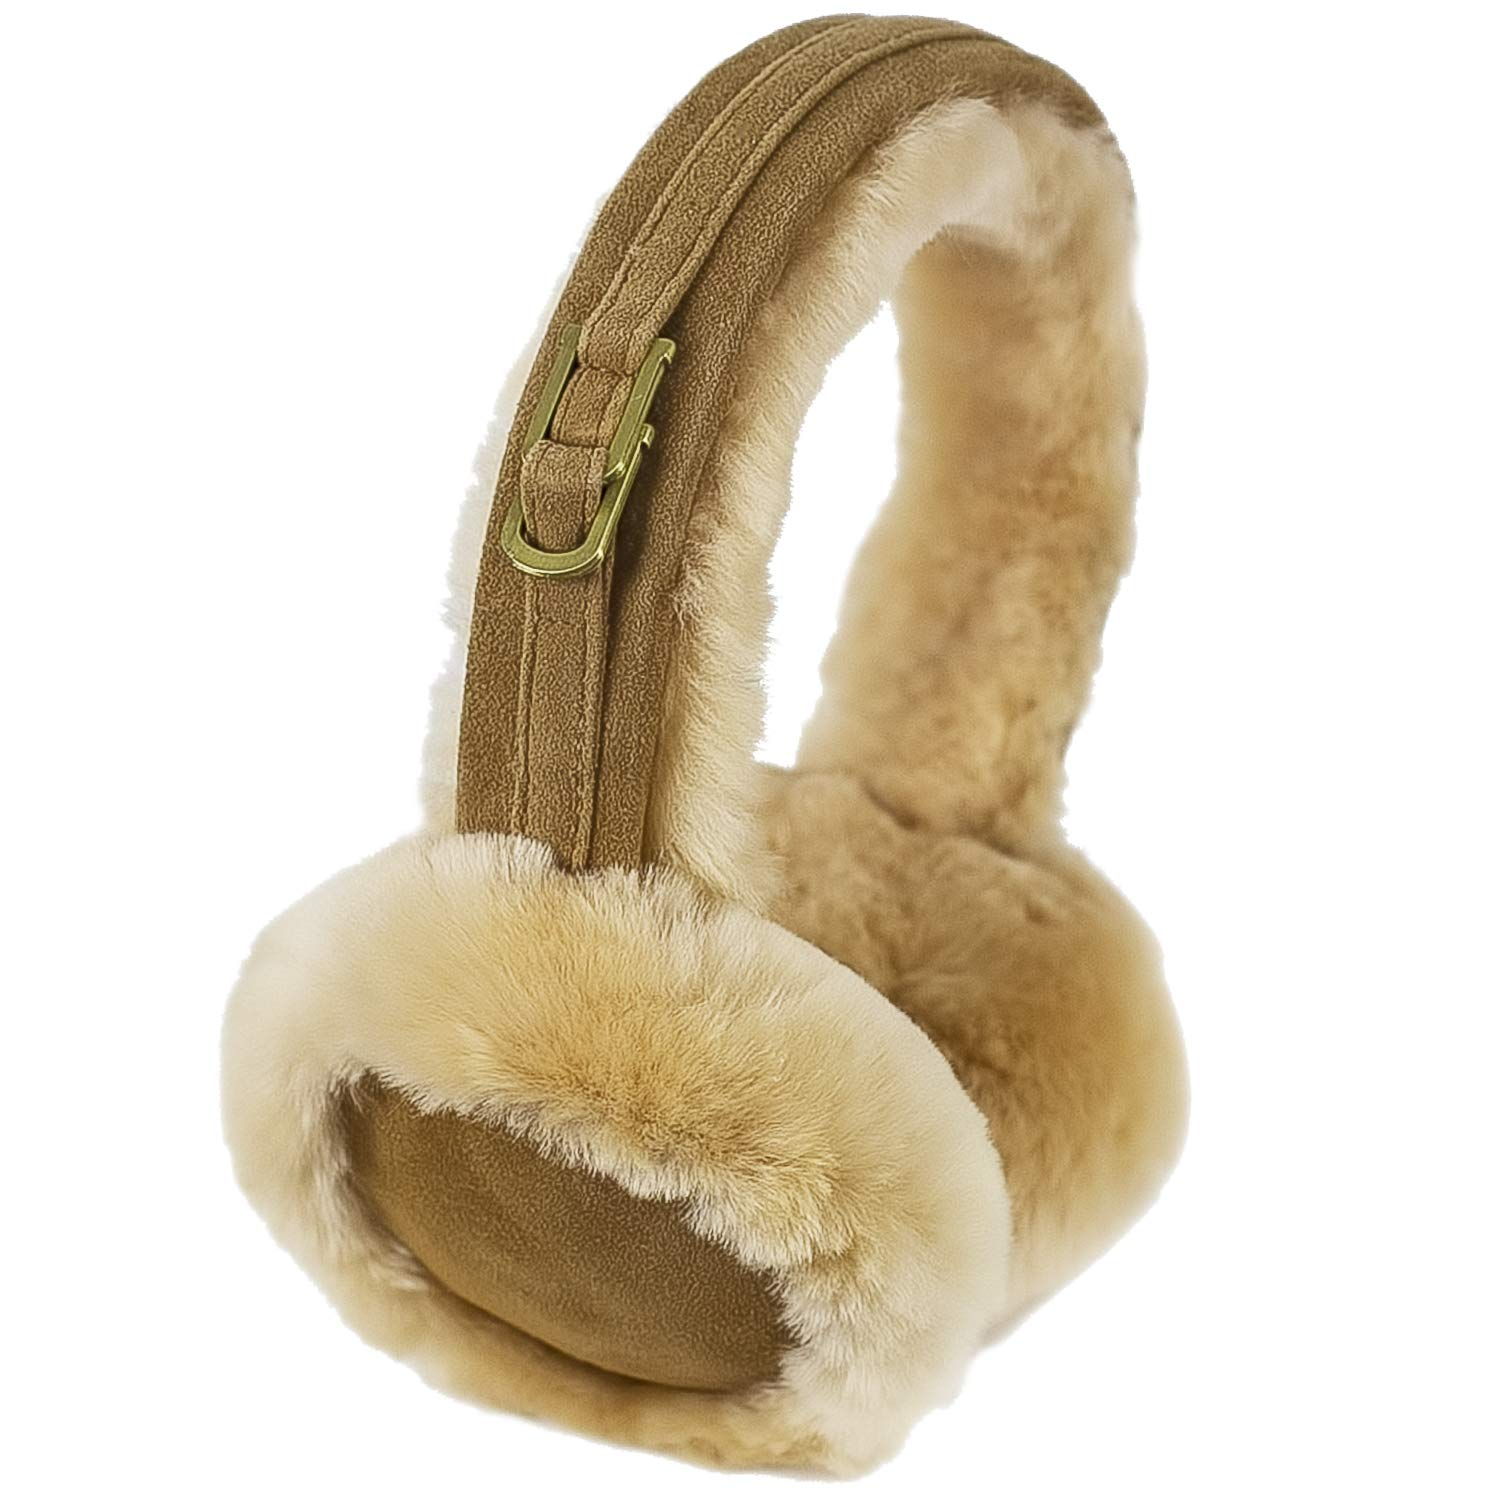 Warm & Fluffy Sheepskin Earmuffs For Women & Girls By Rors & Wren | Luxurious & Soft Sheep Skin Ear Muffs | Stylish Buckle & Chic Suede Finish | Cosy & Comfortable Ear Warmers | Perfect Gift Idea